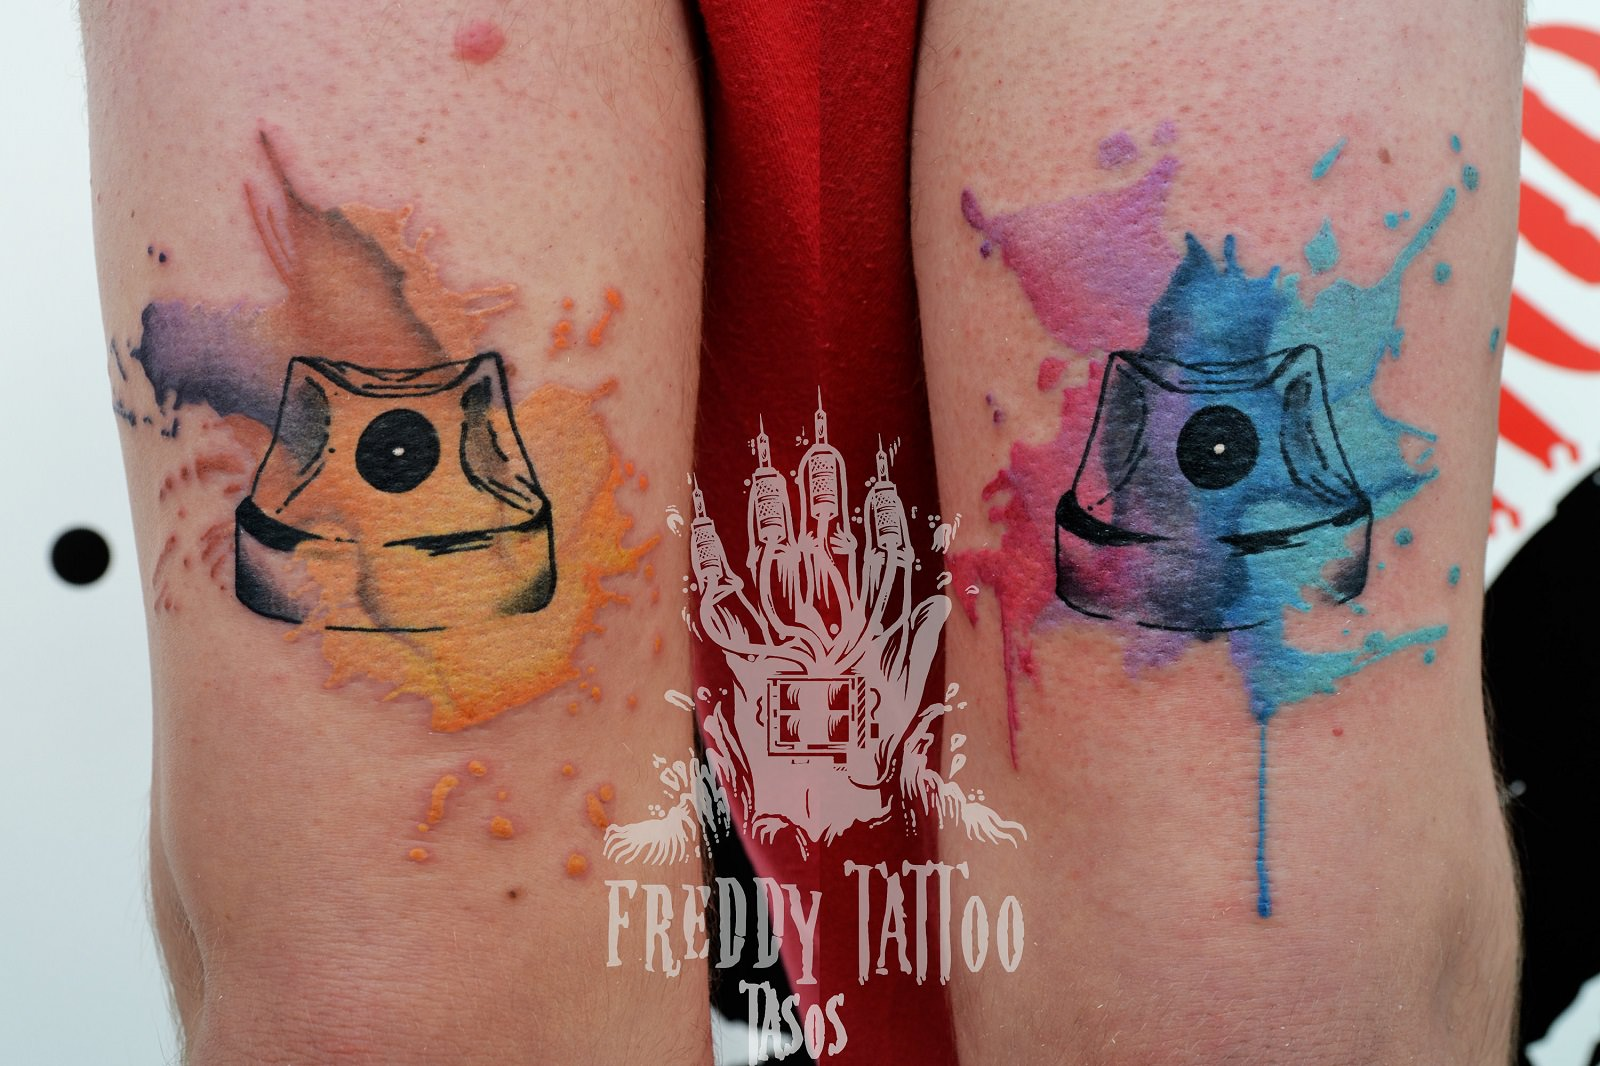 Freddy Tattoo Studio 17